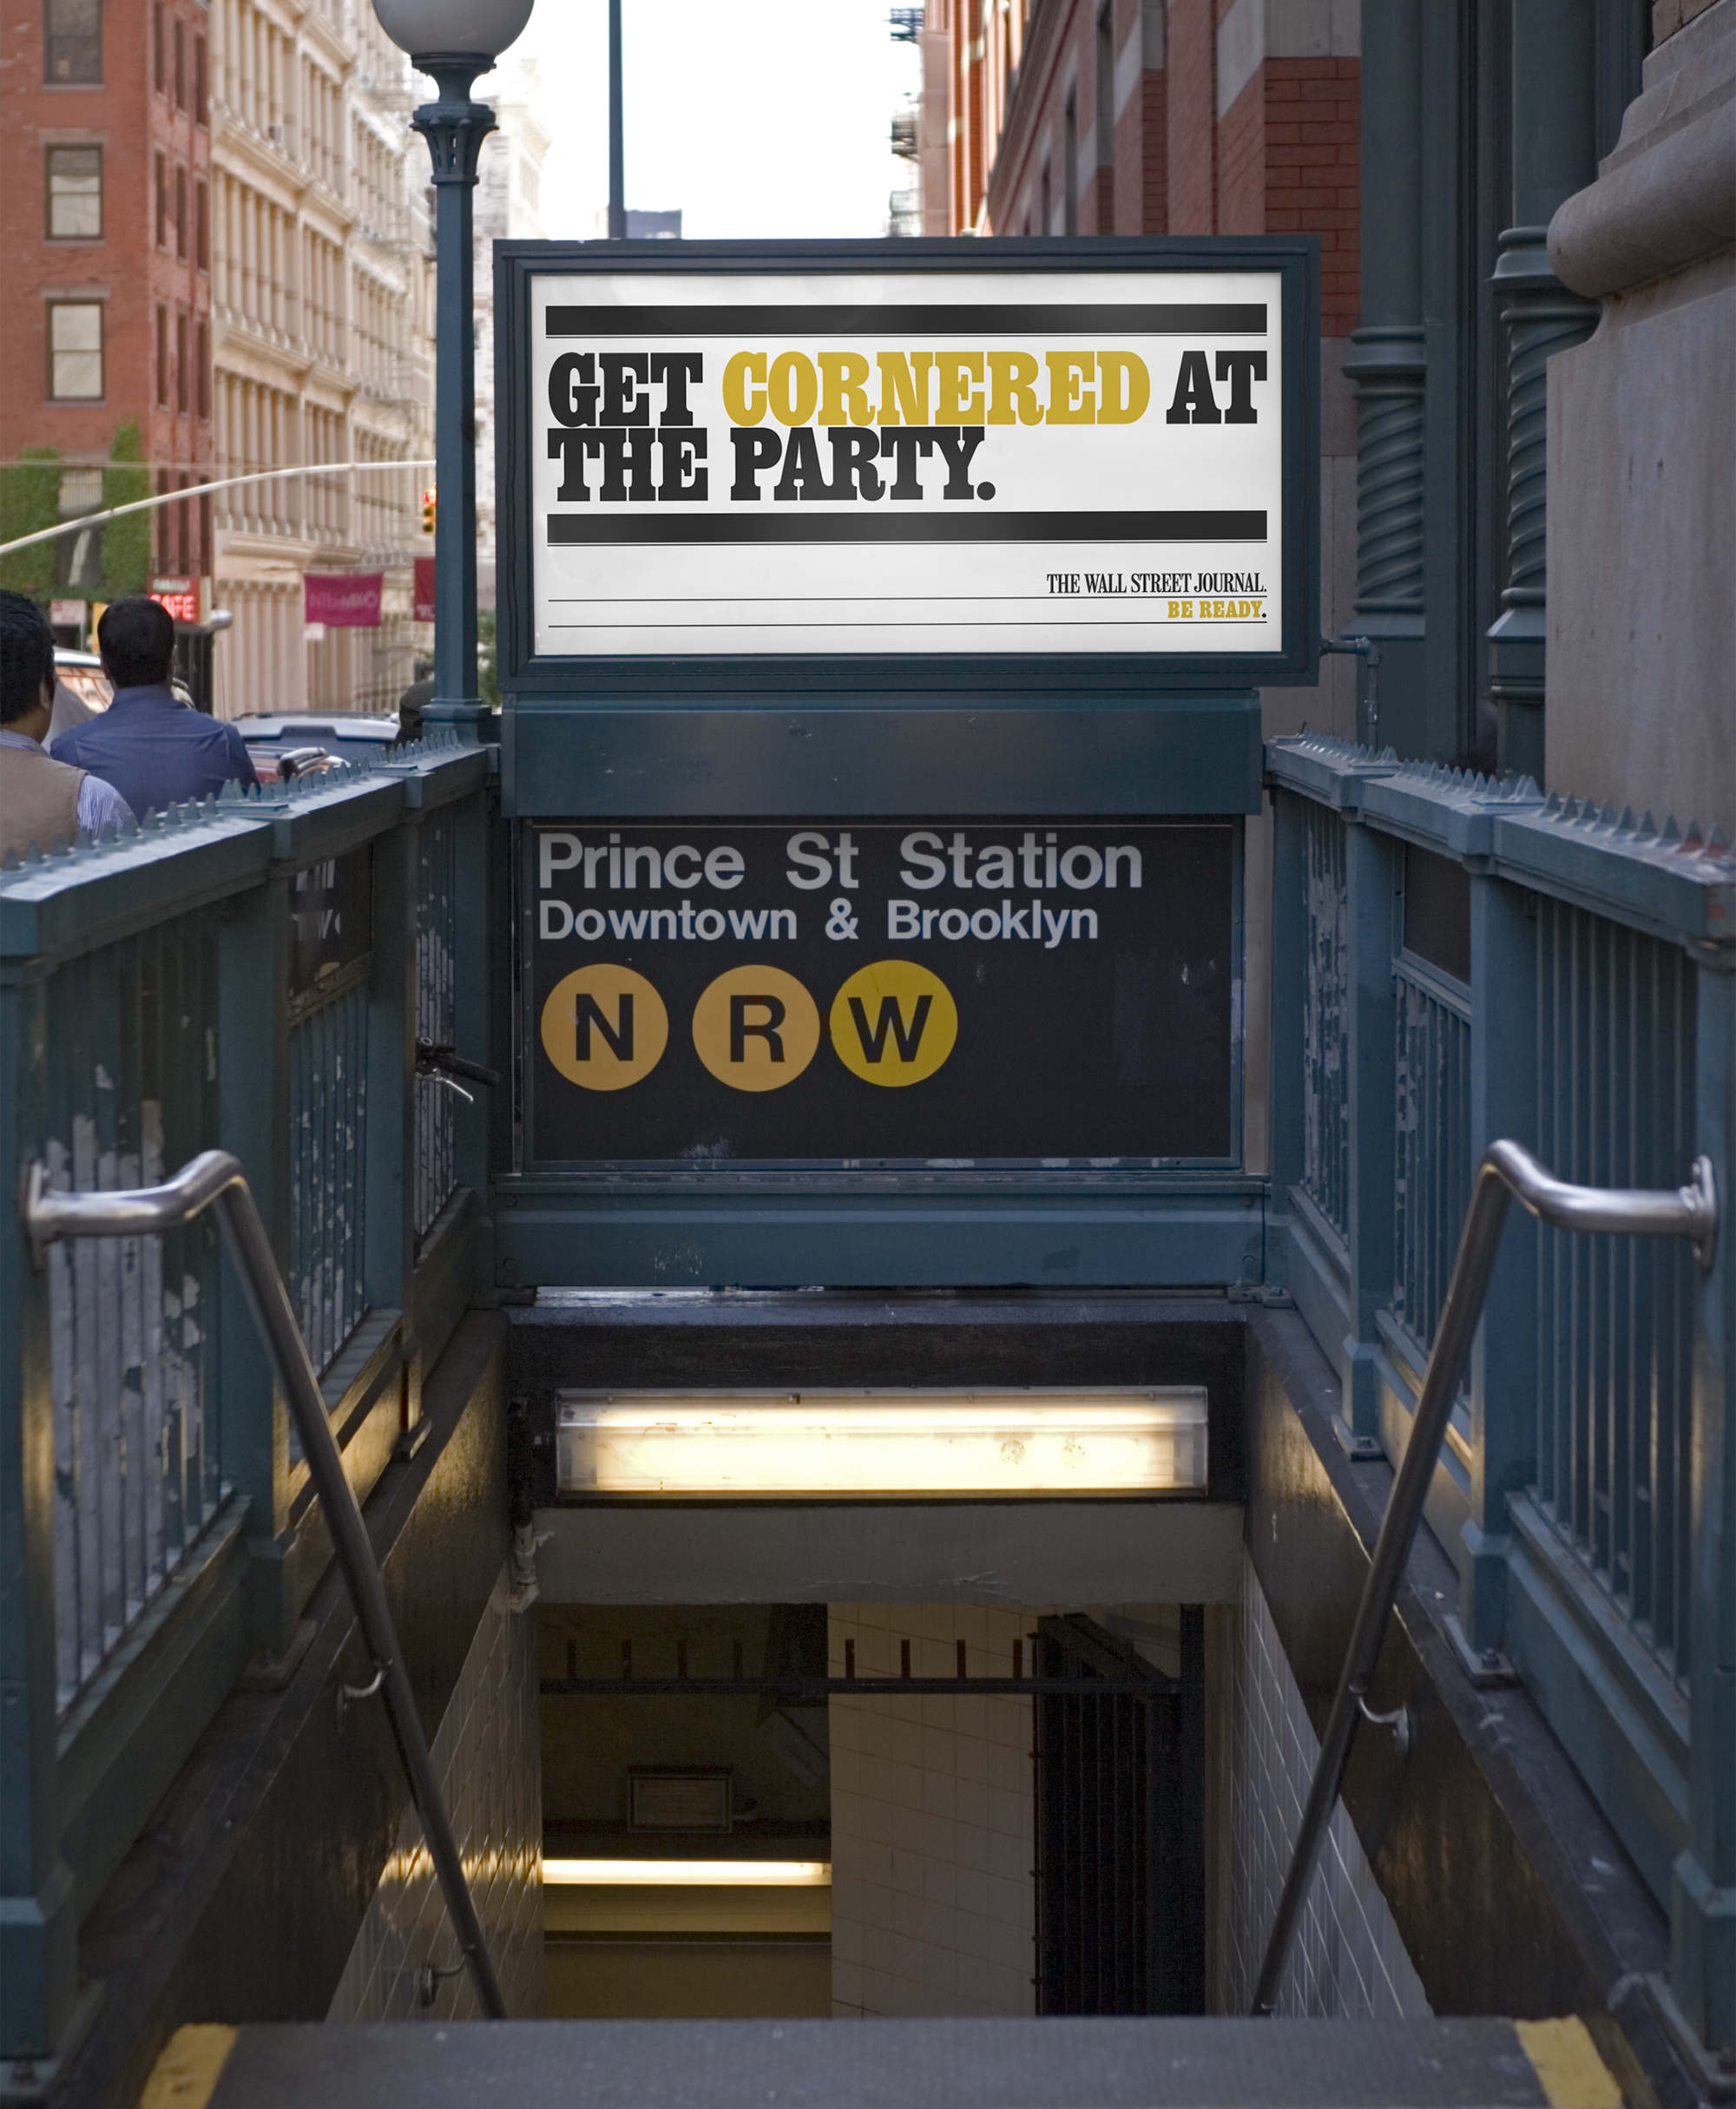 Subway_Entrance_2000px_2000_c.jpg